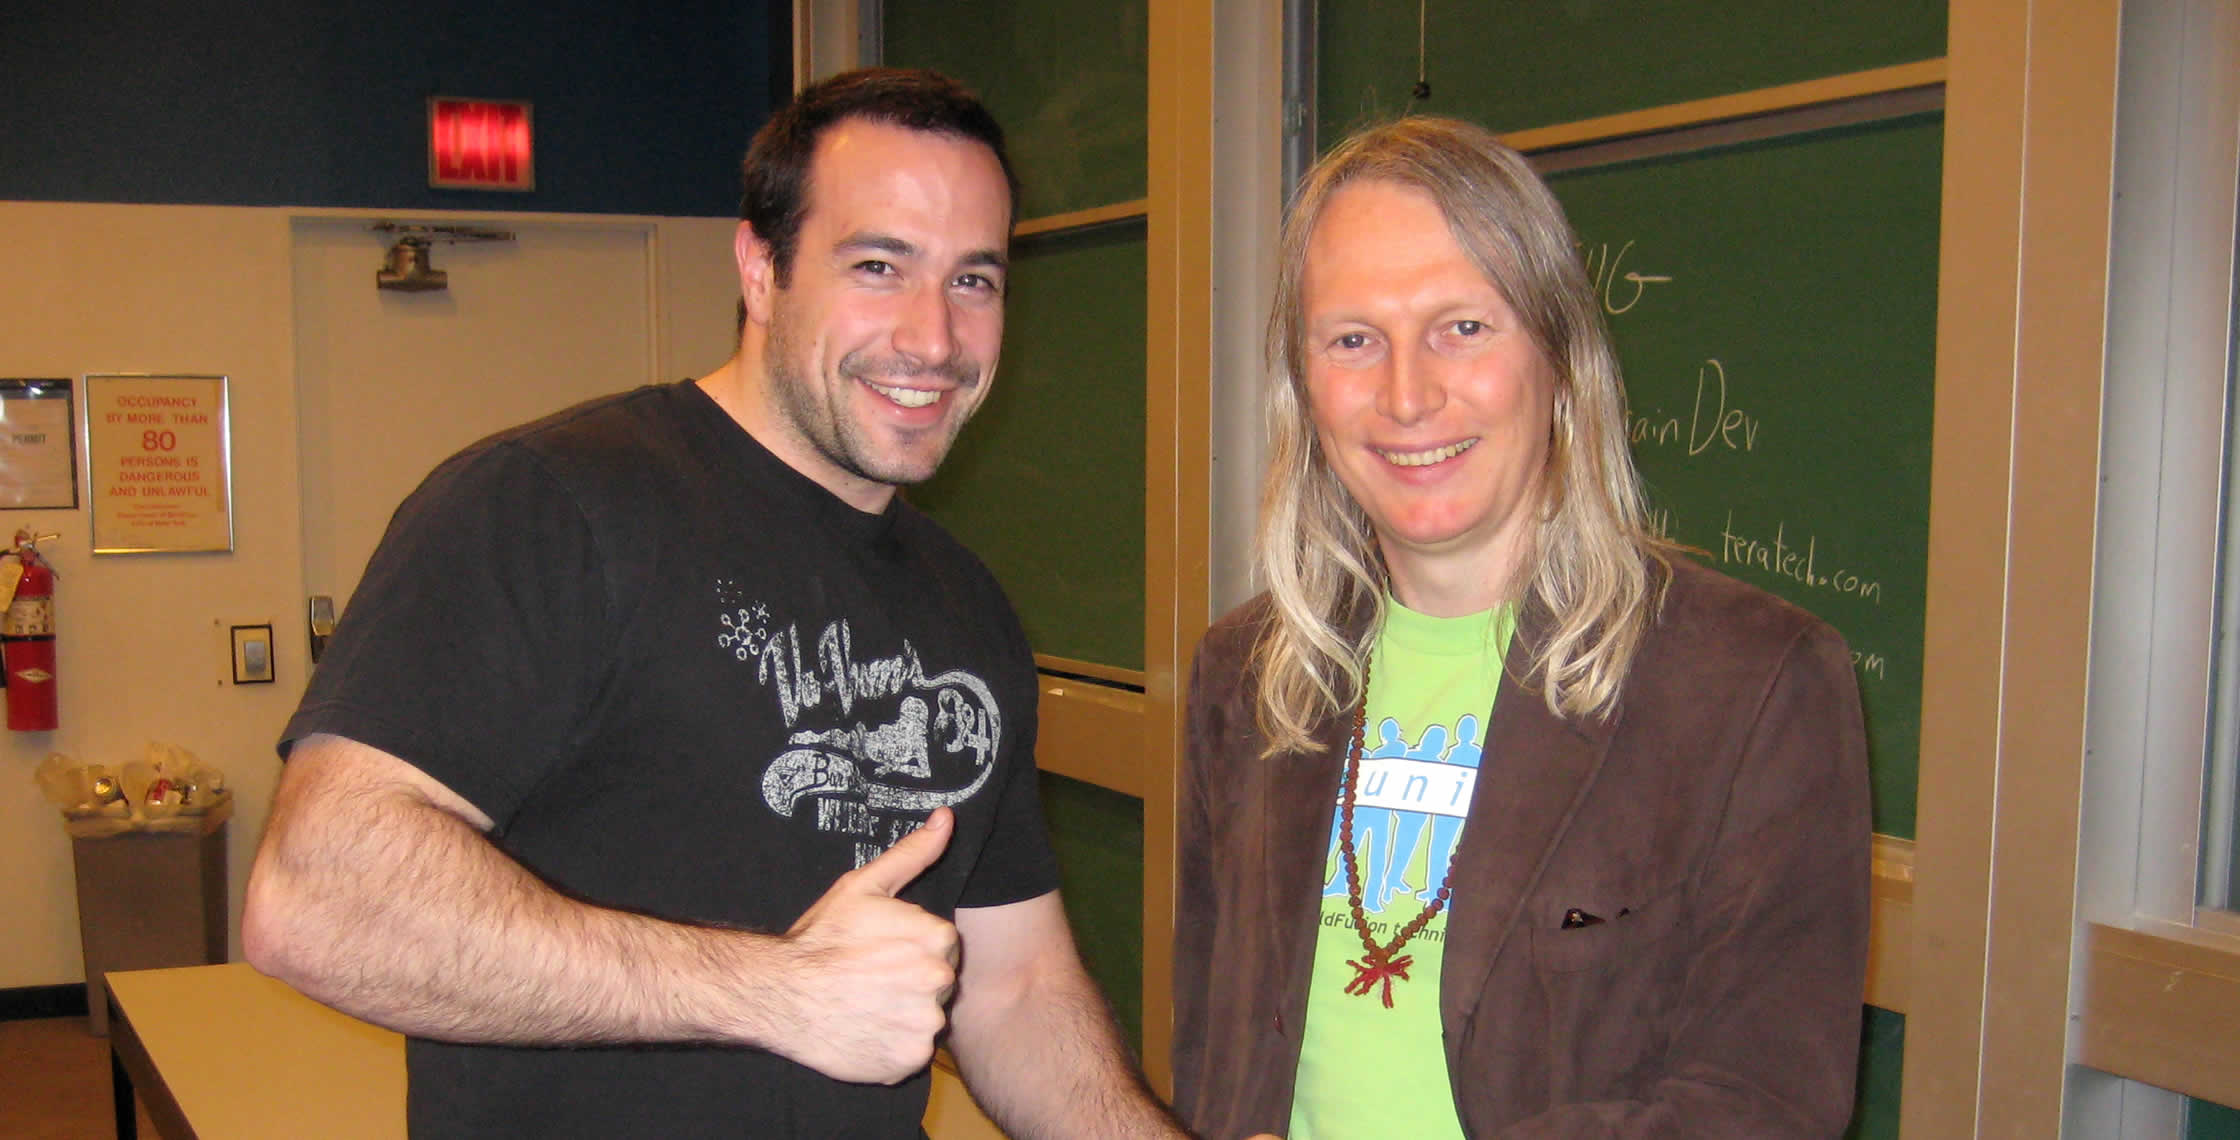 Ben Nadel at the New York ColdFusion User Group (May. 2008) with: Michael Smith